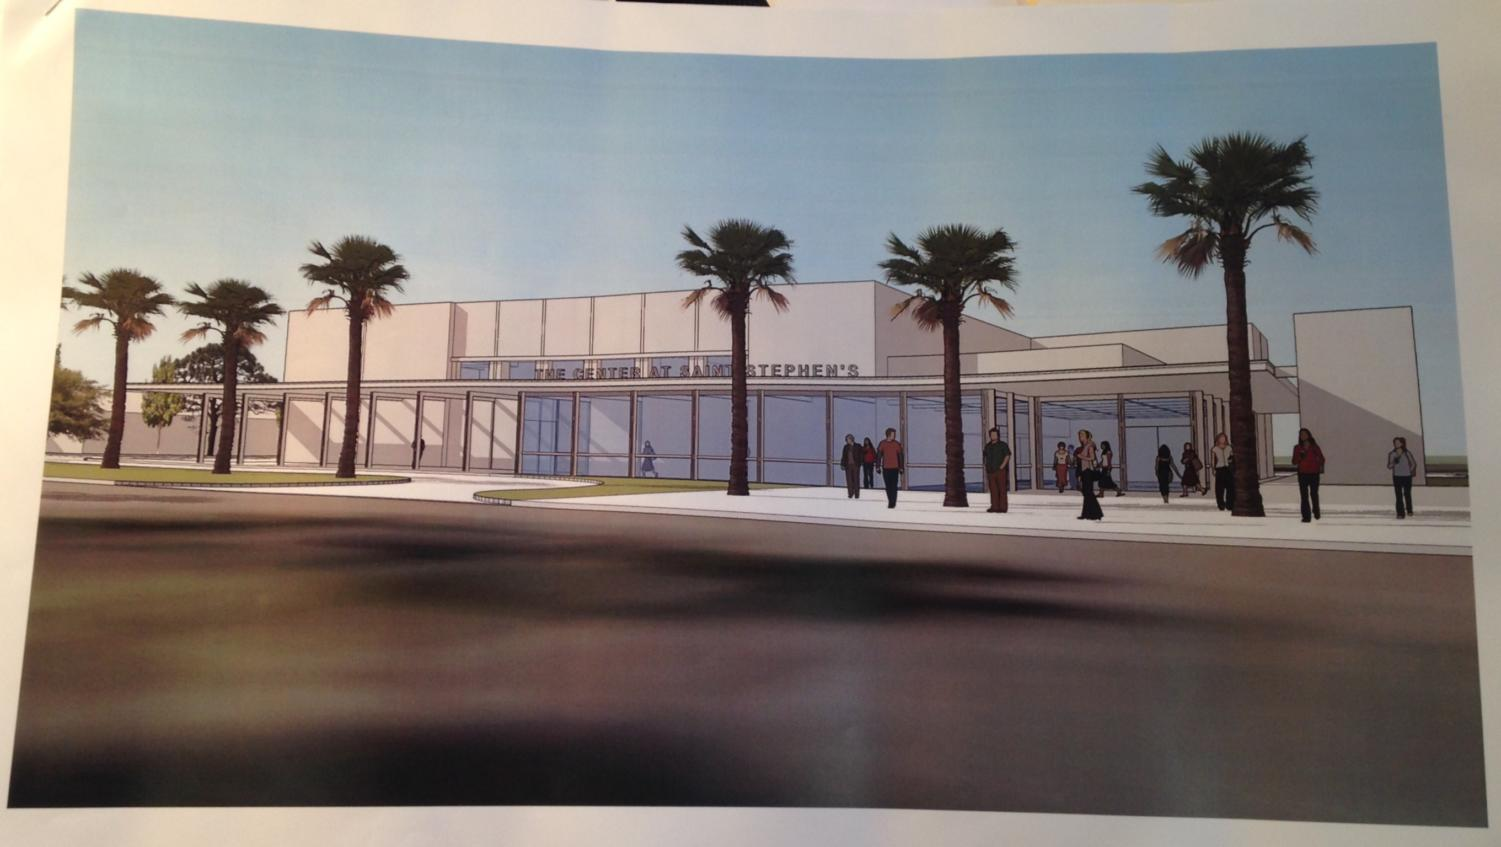 This picture gives us an idea of what the new performing arts center will look like.